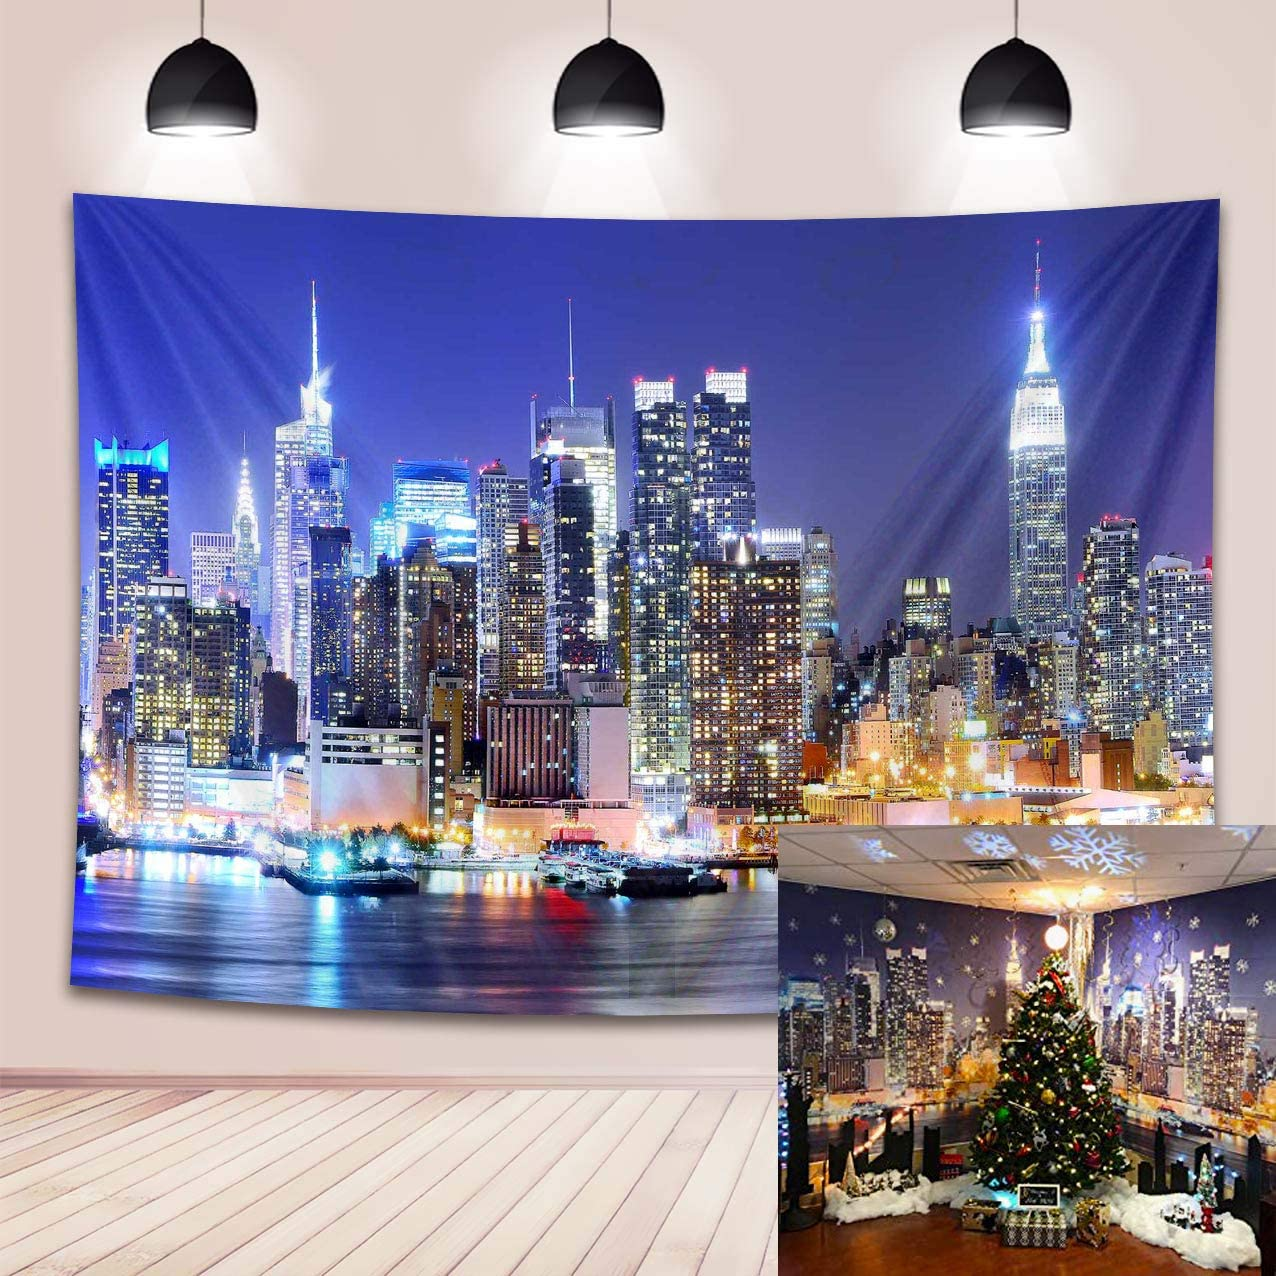 New York City Backdrop Manhattan Night Scene Skyscraper Urban Light Skyline Background Photo Studio Porps 7x5FT